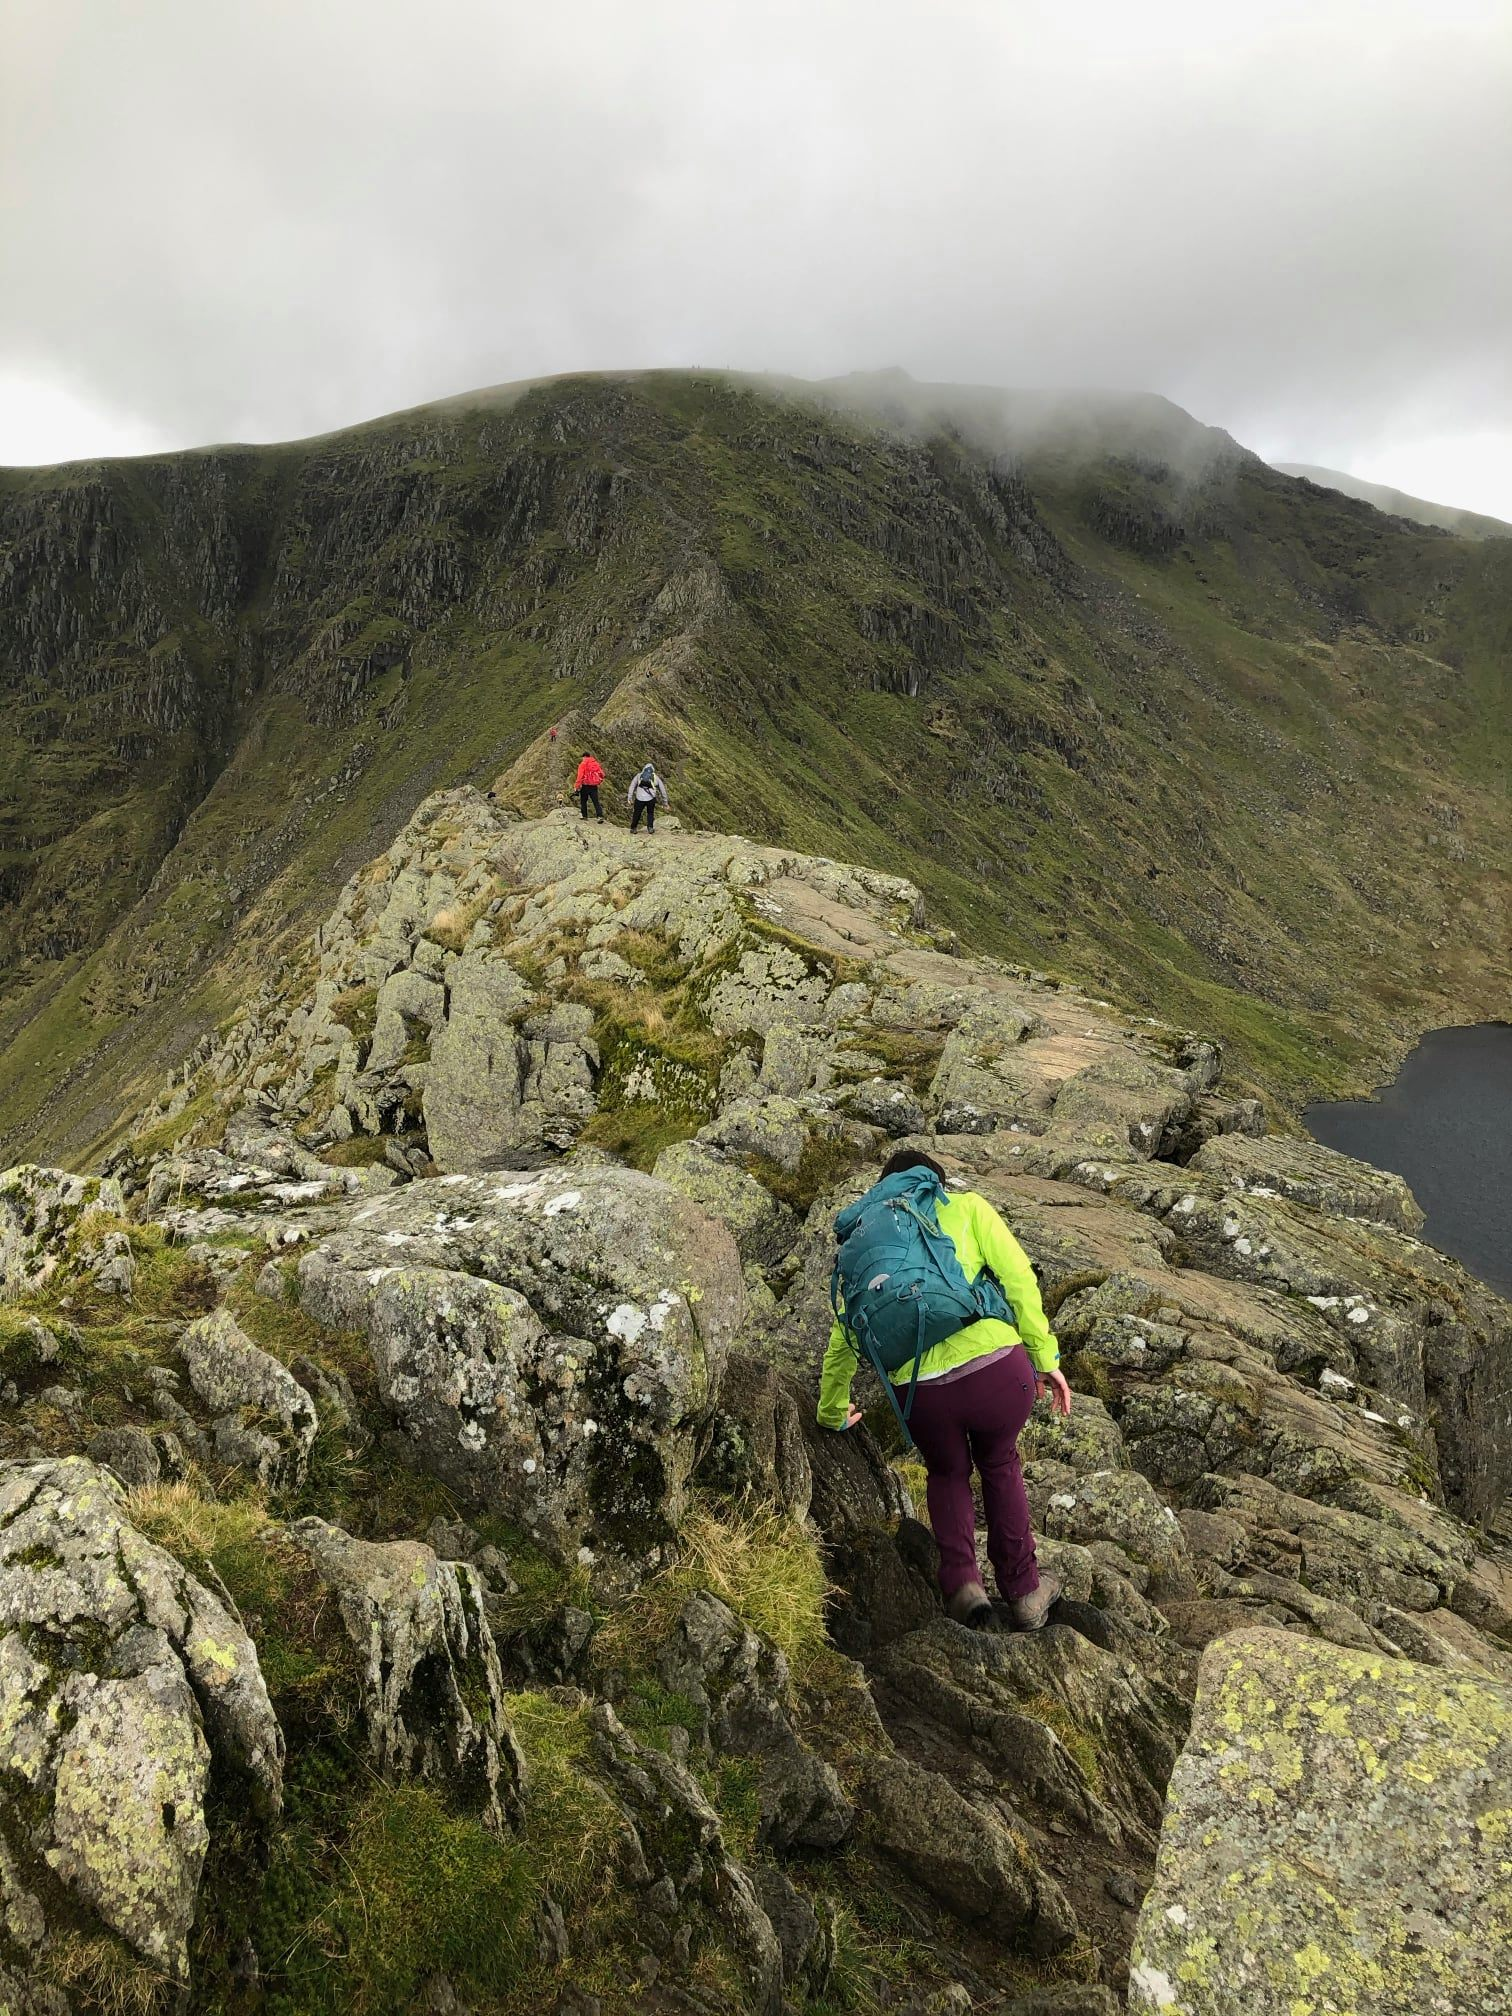 Scramblers make their way along Striding Edge on helvelly, during a guided scrambling day in the Lake District